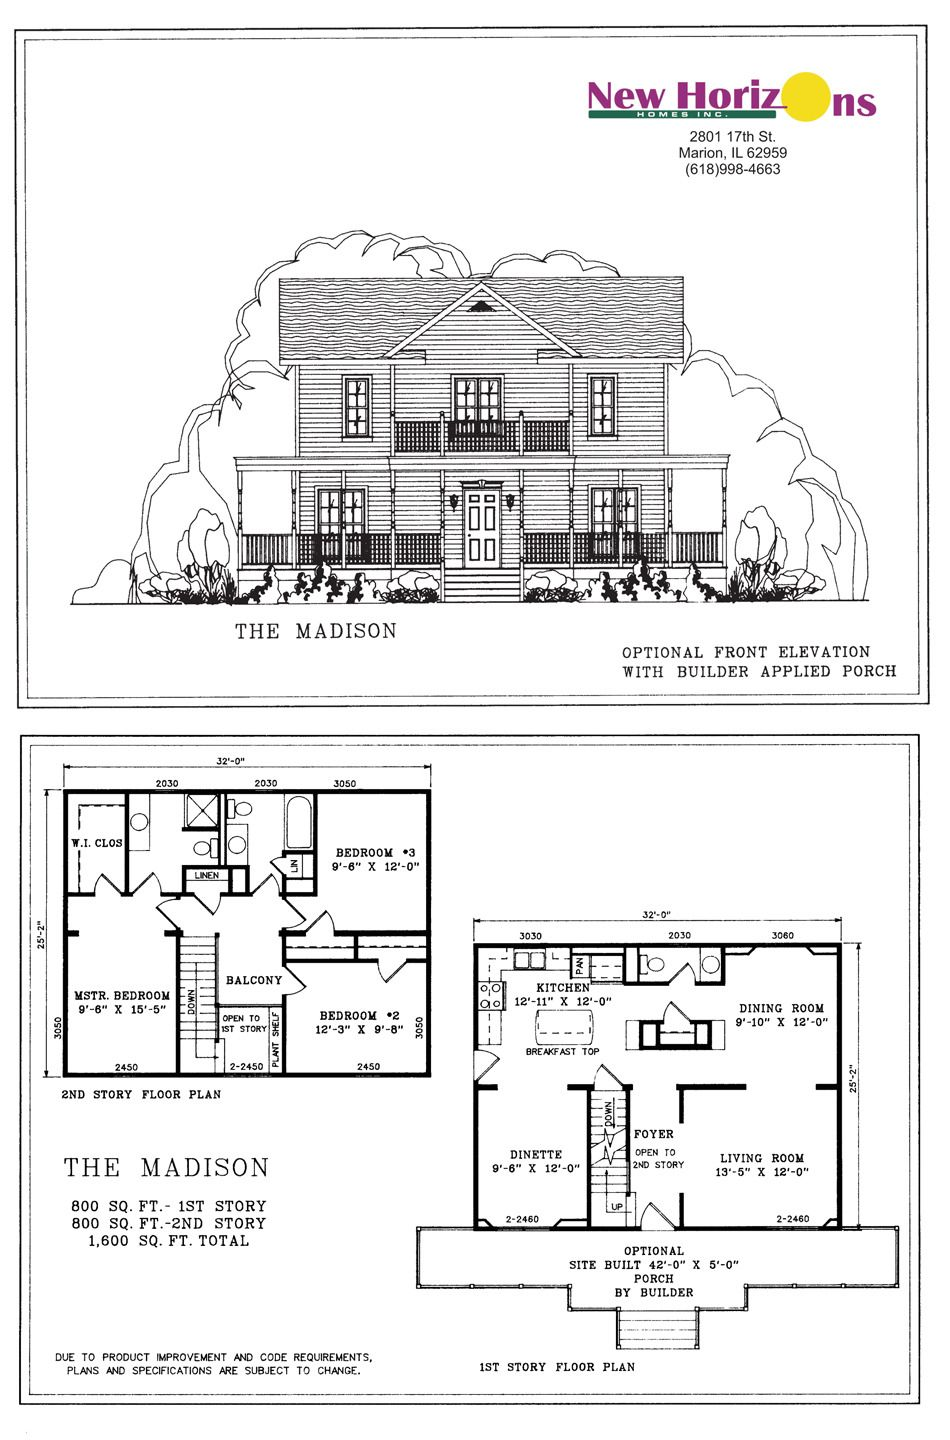 House Building Plans Free Download 2021 In 2020 Square Floor Plans Simple Floor Plans Farmhouse Floor Plans